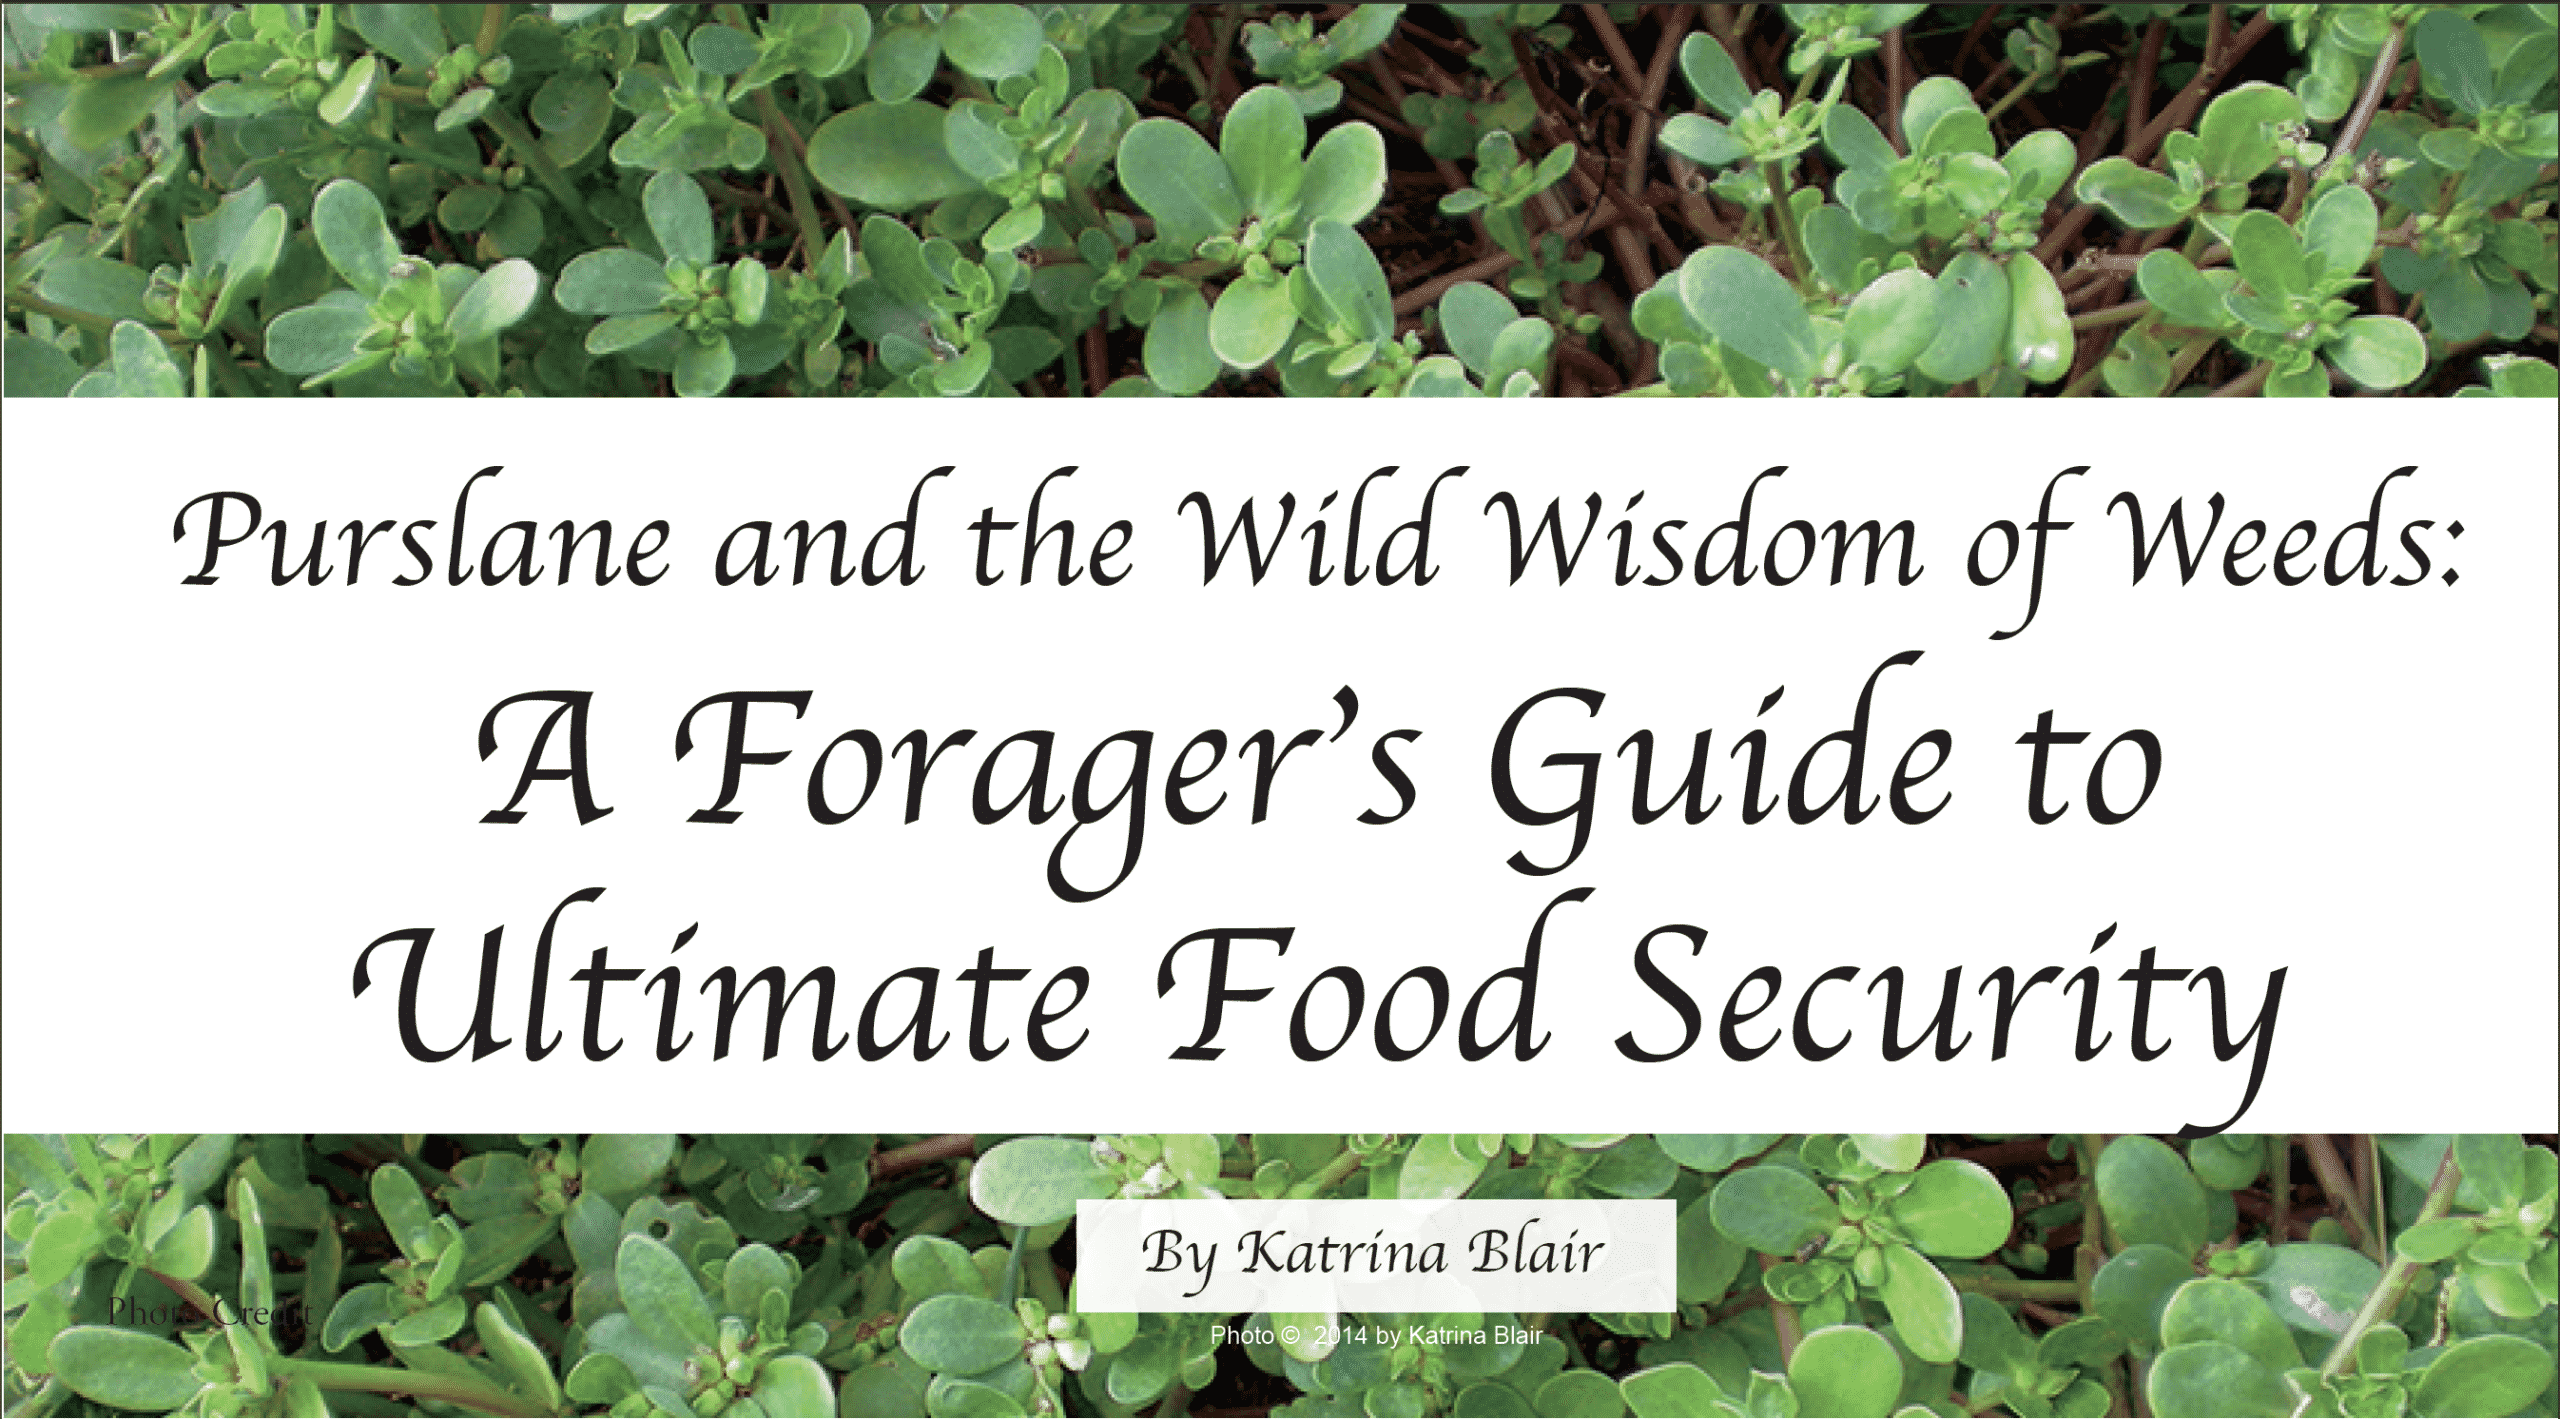 A Forager's Guide to Ultimate Food Security